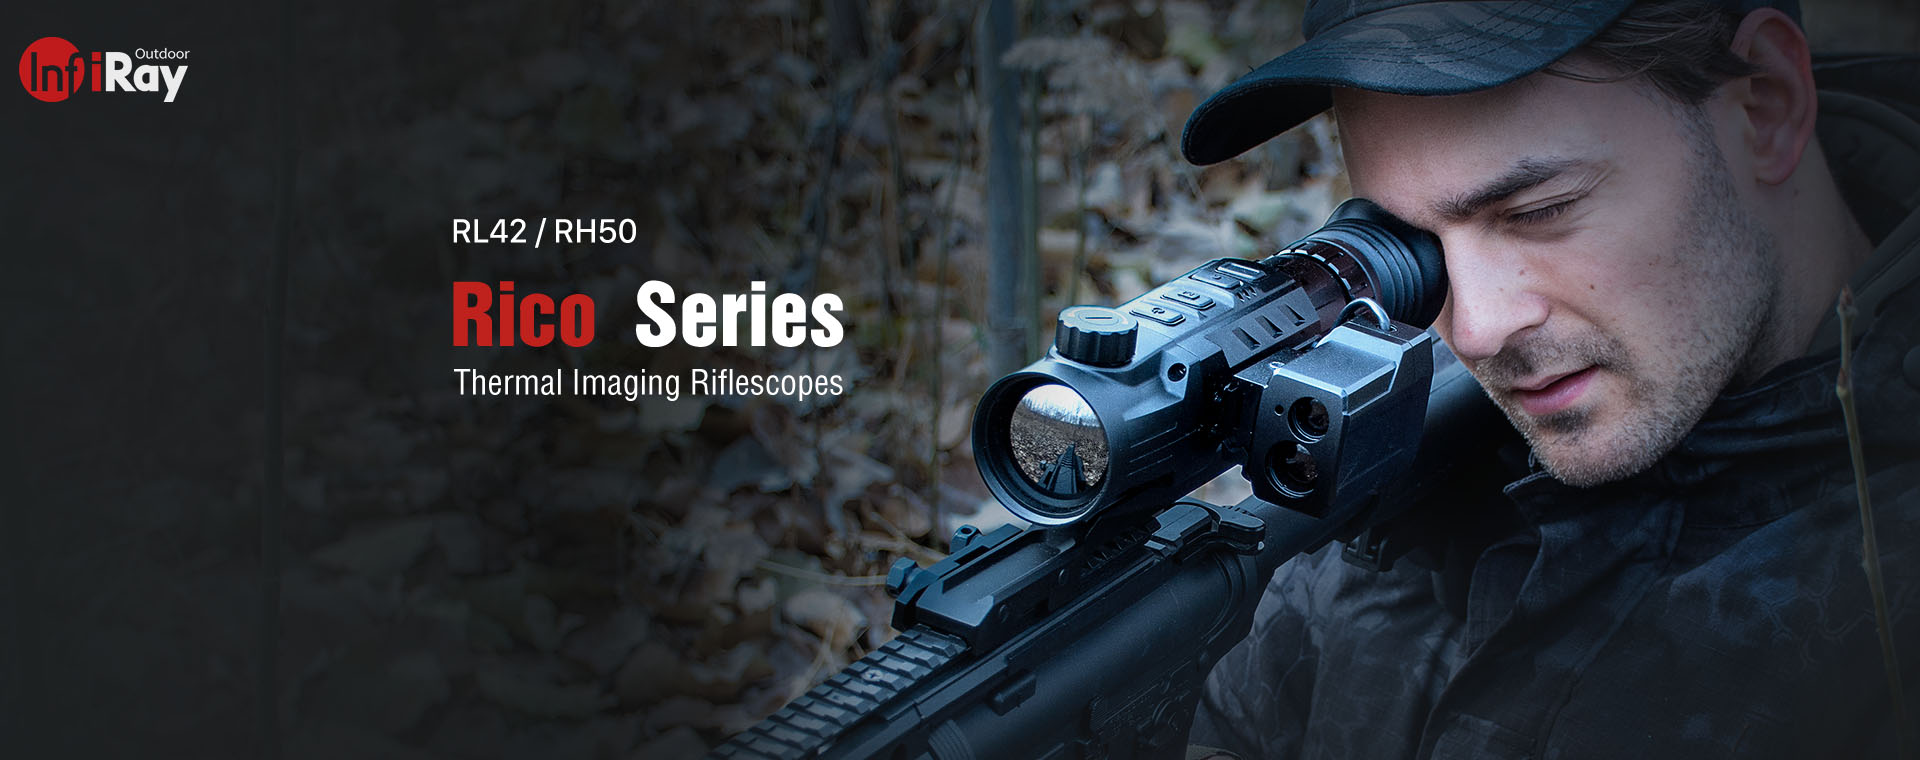 Thermal Imaging Riflescope Rico Series